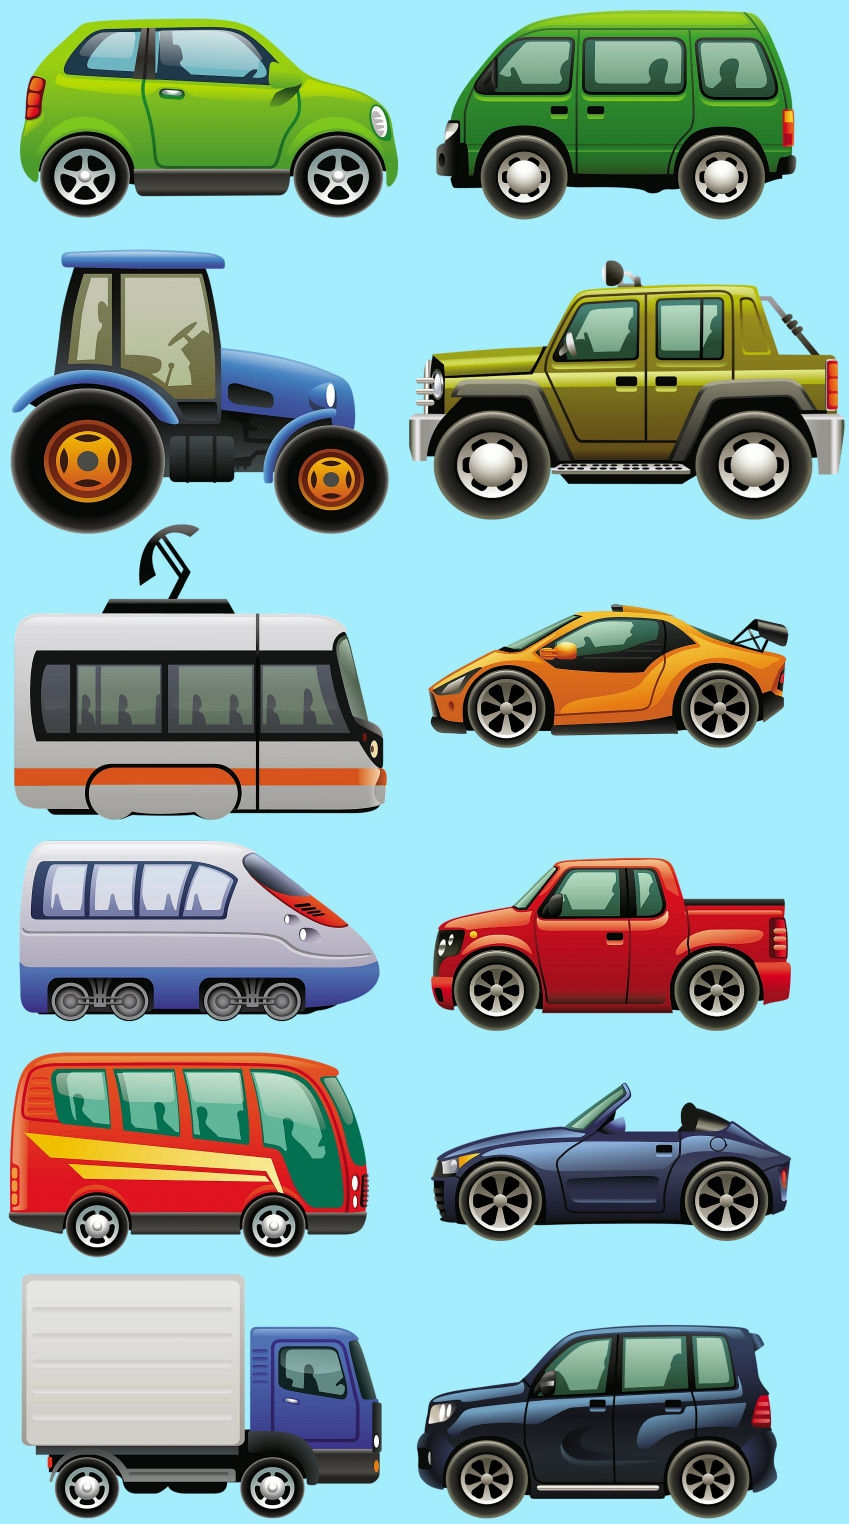 Race car wall stickers image collections home wall decoration ideas vehicles tractor racecar cars bus tram train childrens nursery vehicles tractor racecar cars bus tram train amipublicfo Gallery